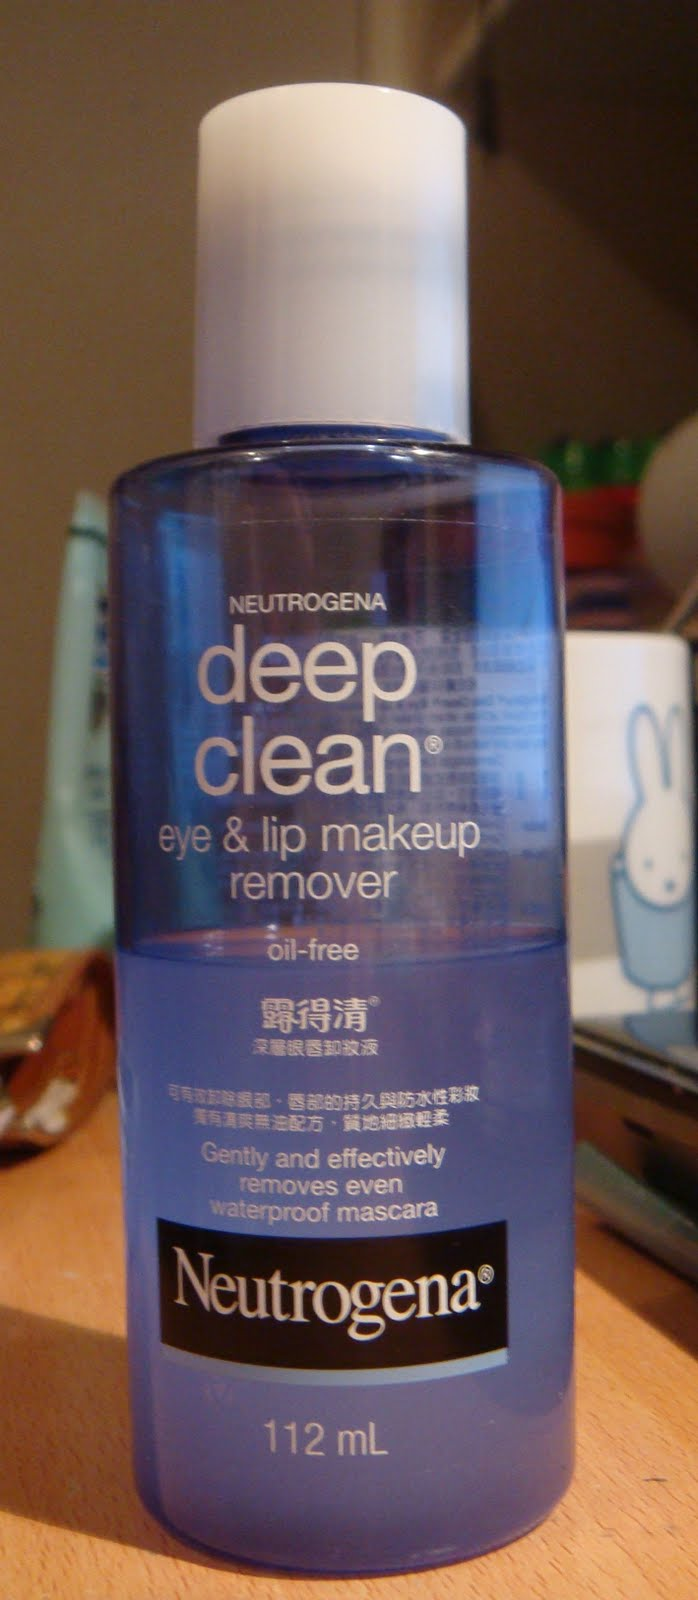 Makeup Removal Important Skin Care Routine: Neutrogena Deep Clean Eye & Lip Makeup Remover